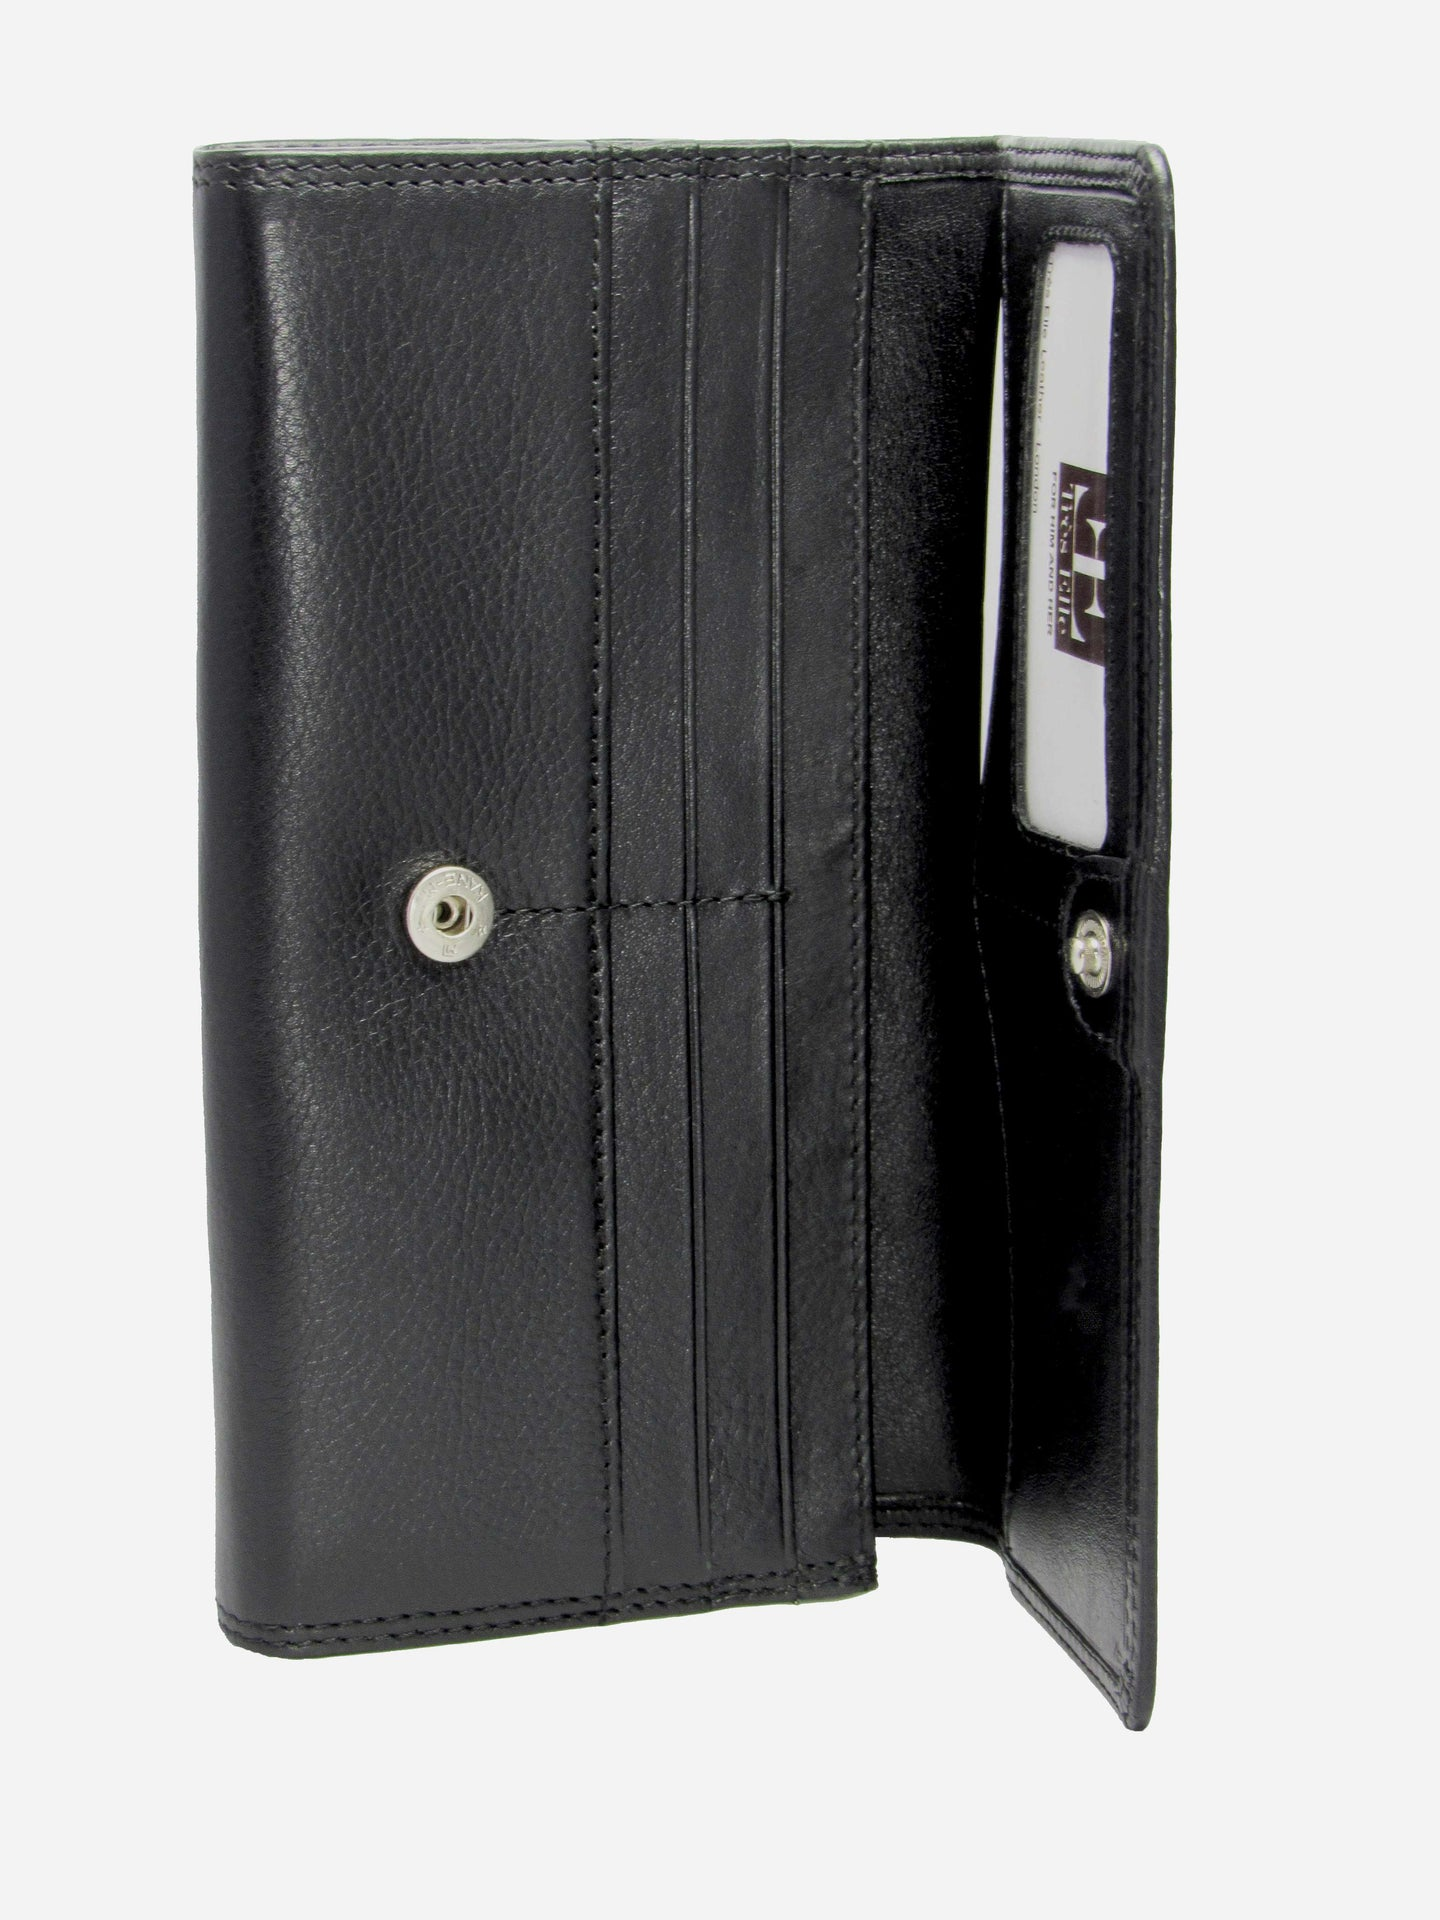 Purse's Real Leather with RFID Protection 3